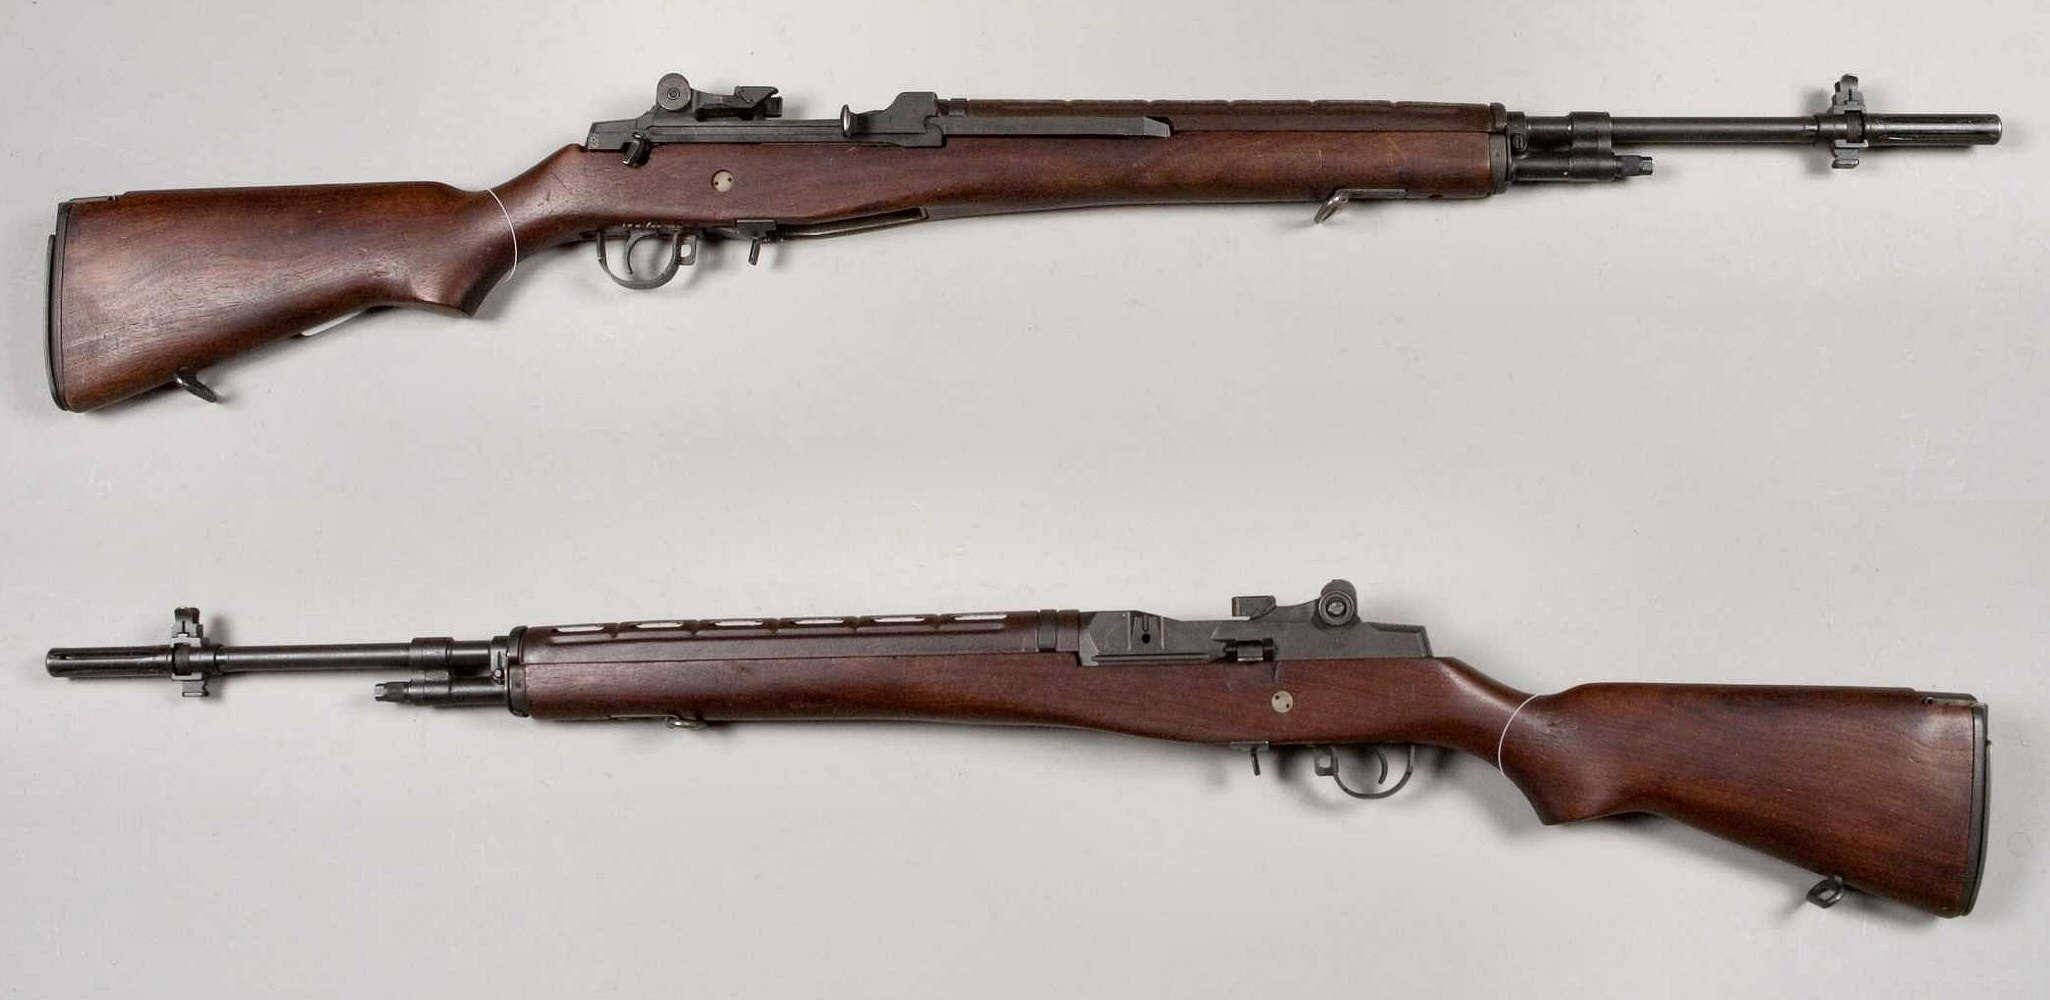 how to see service history of a rifle